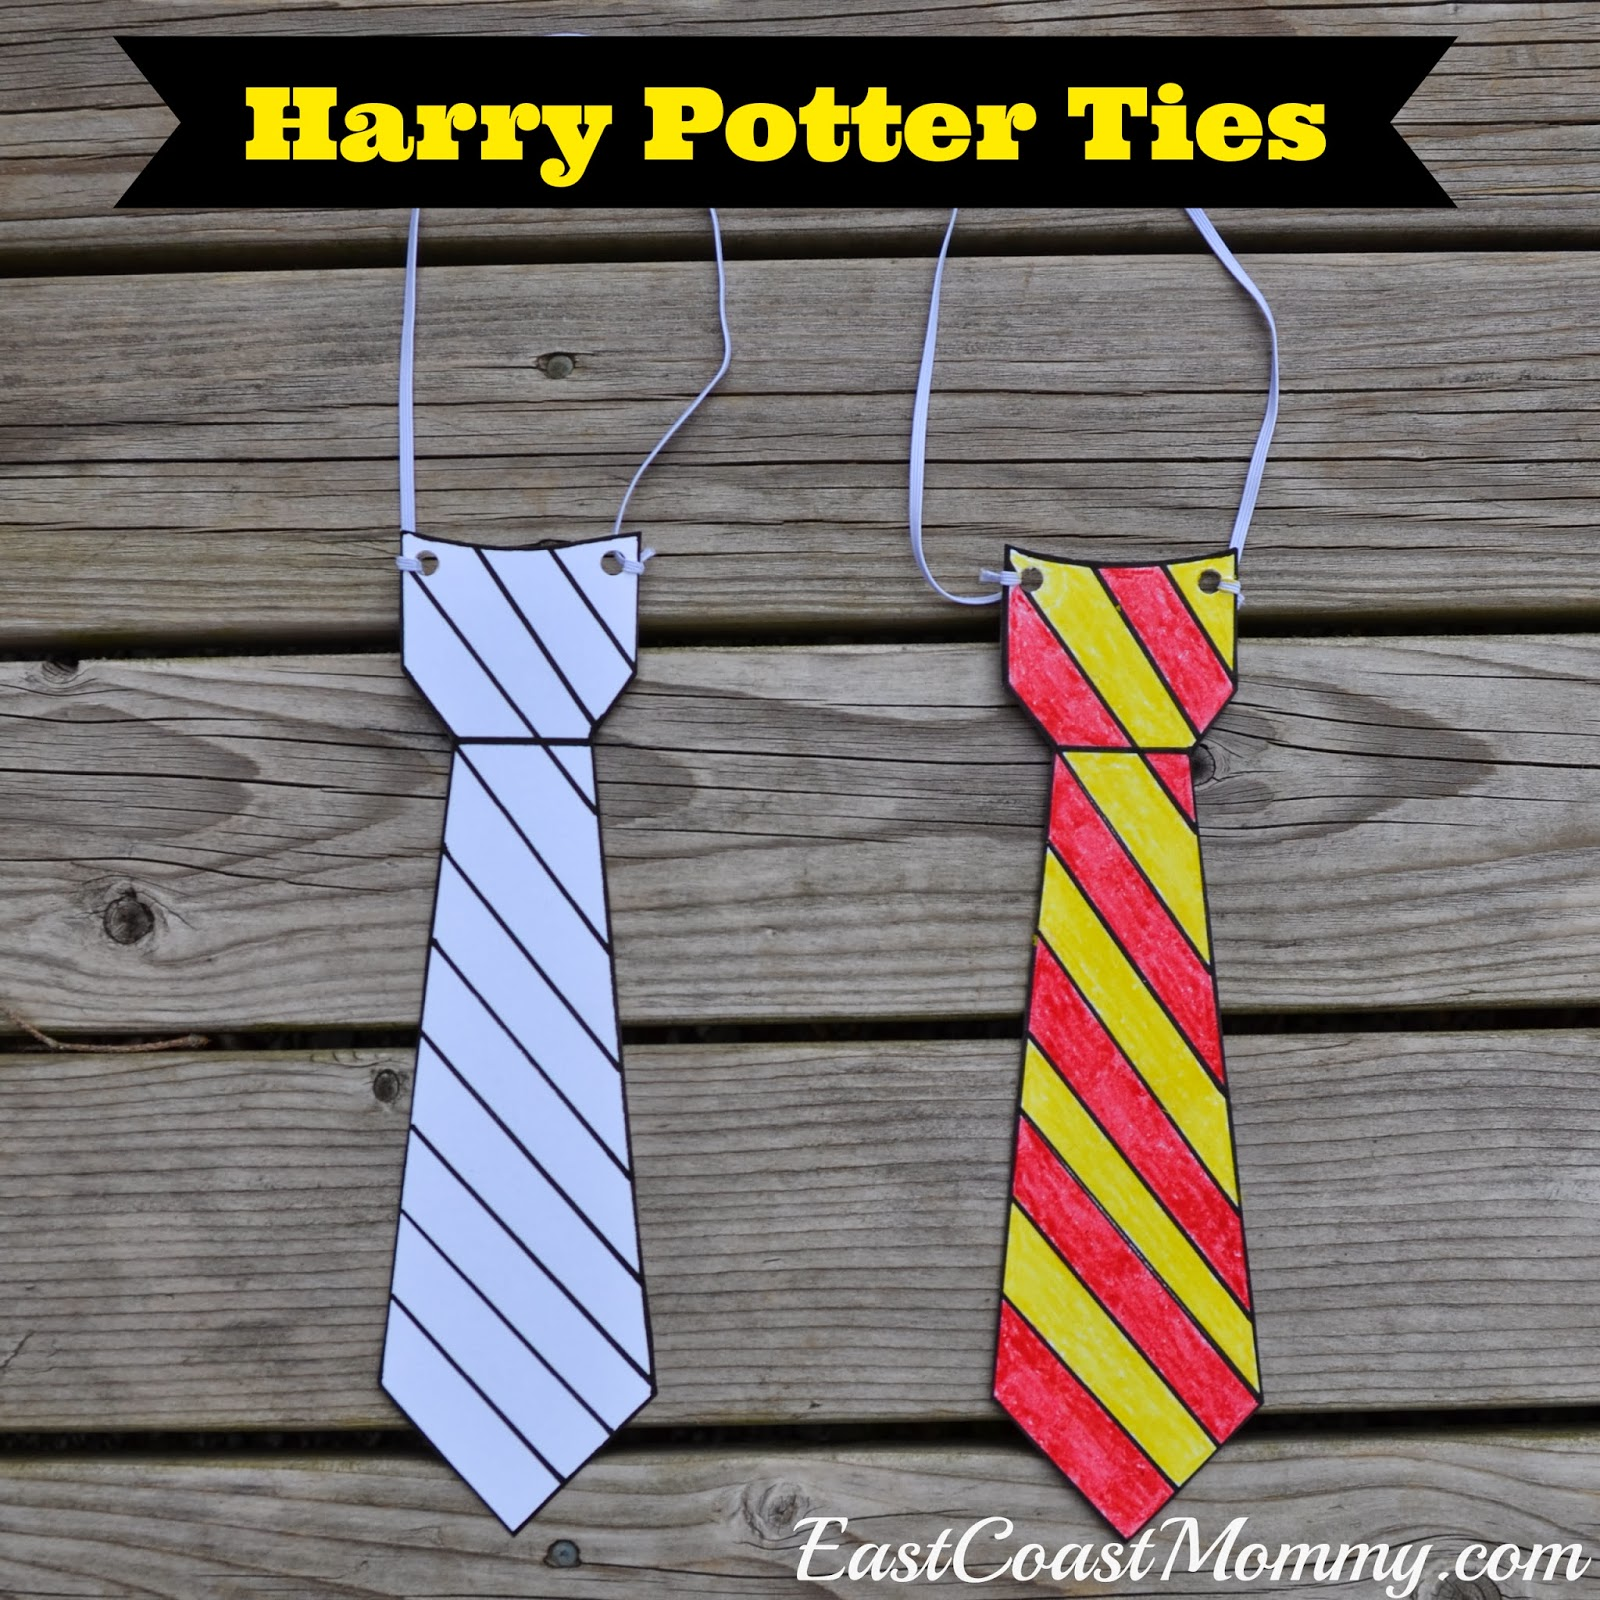 tie template printable